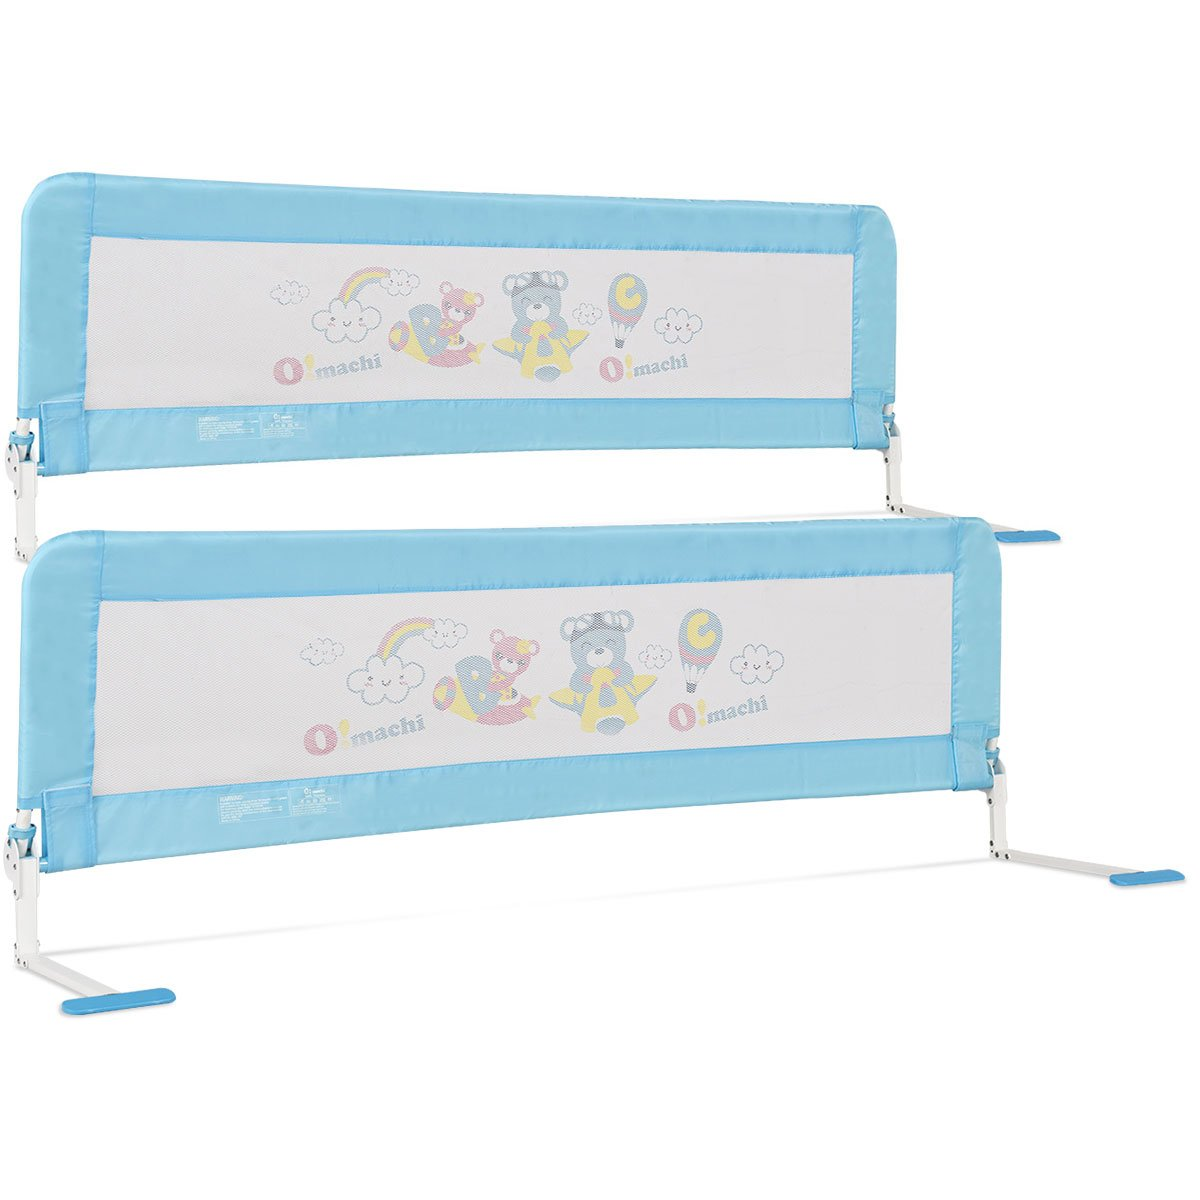 Costzon Toddlers Double Bed Rail Guard, Stainless Steel Folding Safety Bed Guard, Swing Down Bedrail for Convertible Crib, Kids Twin, Double, Full Size Queen & King, Set of 2 (Blue, 69-inch, Foamed)